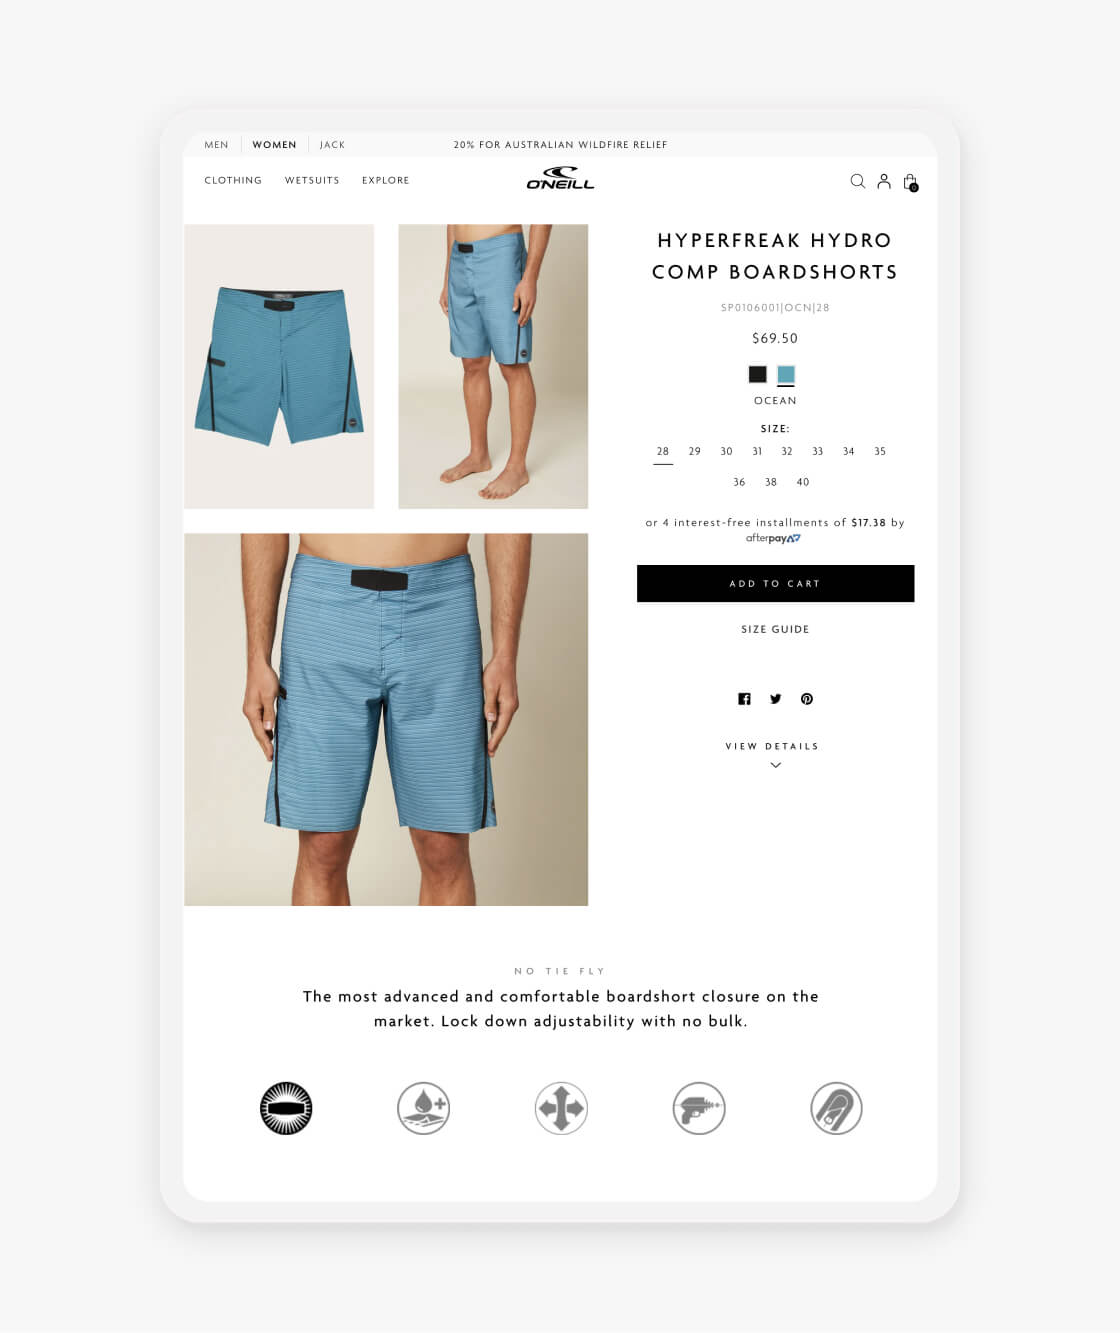 oneill shopify product page on a tablet